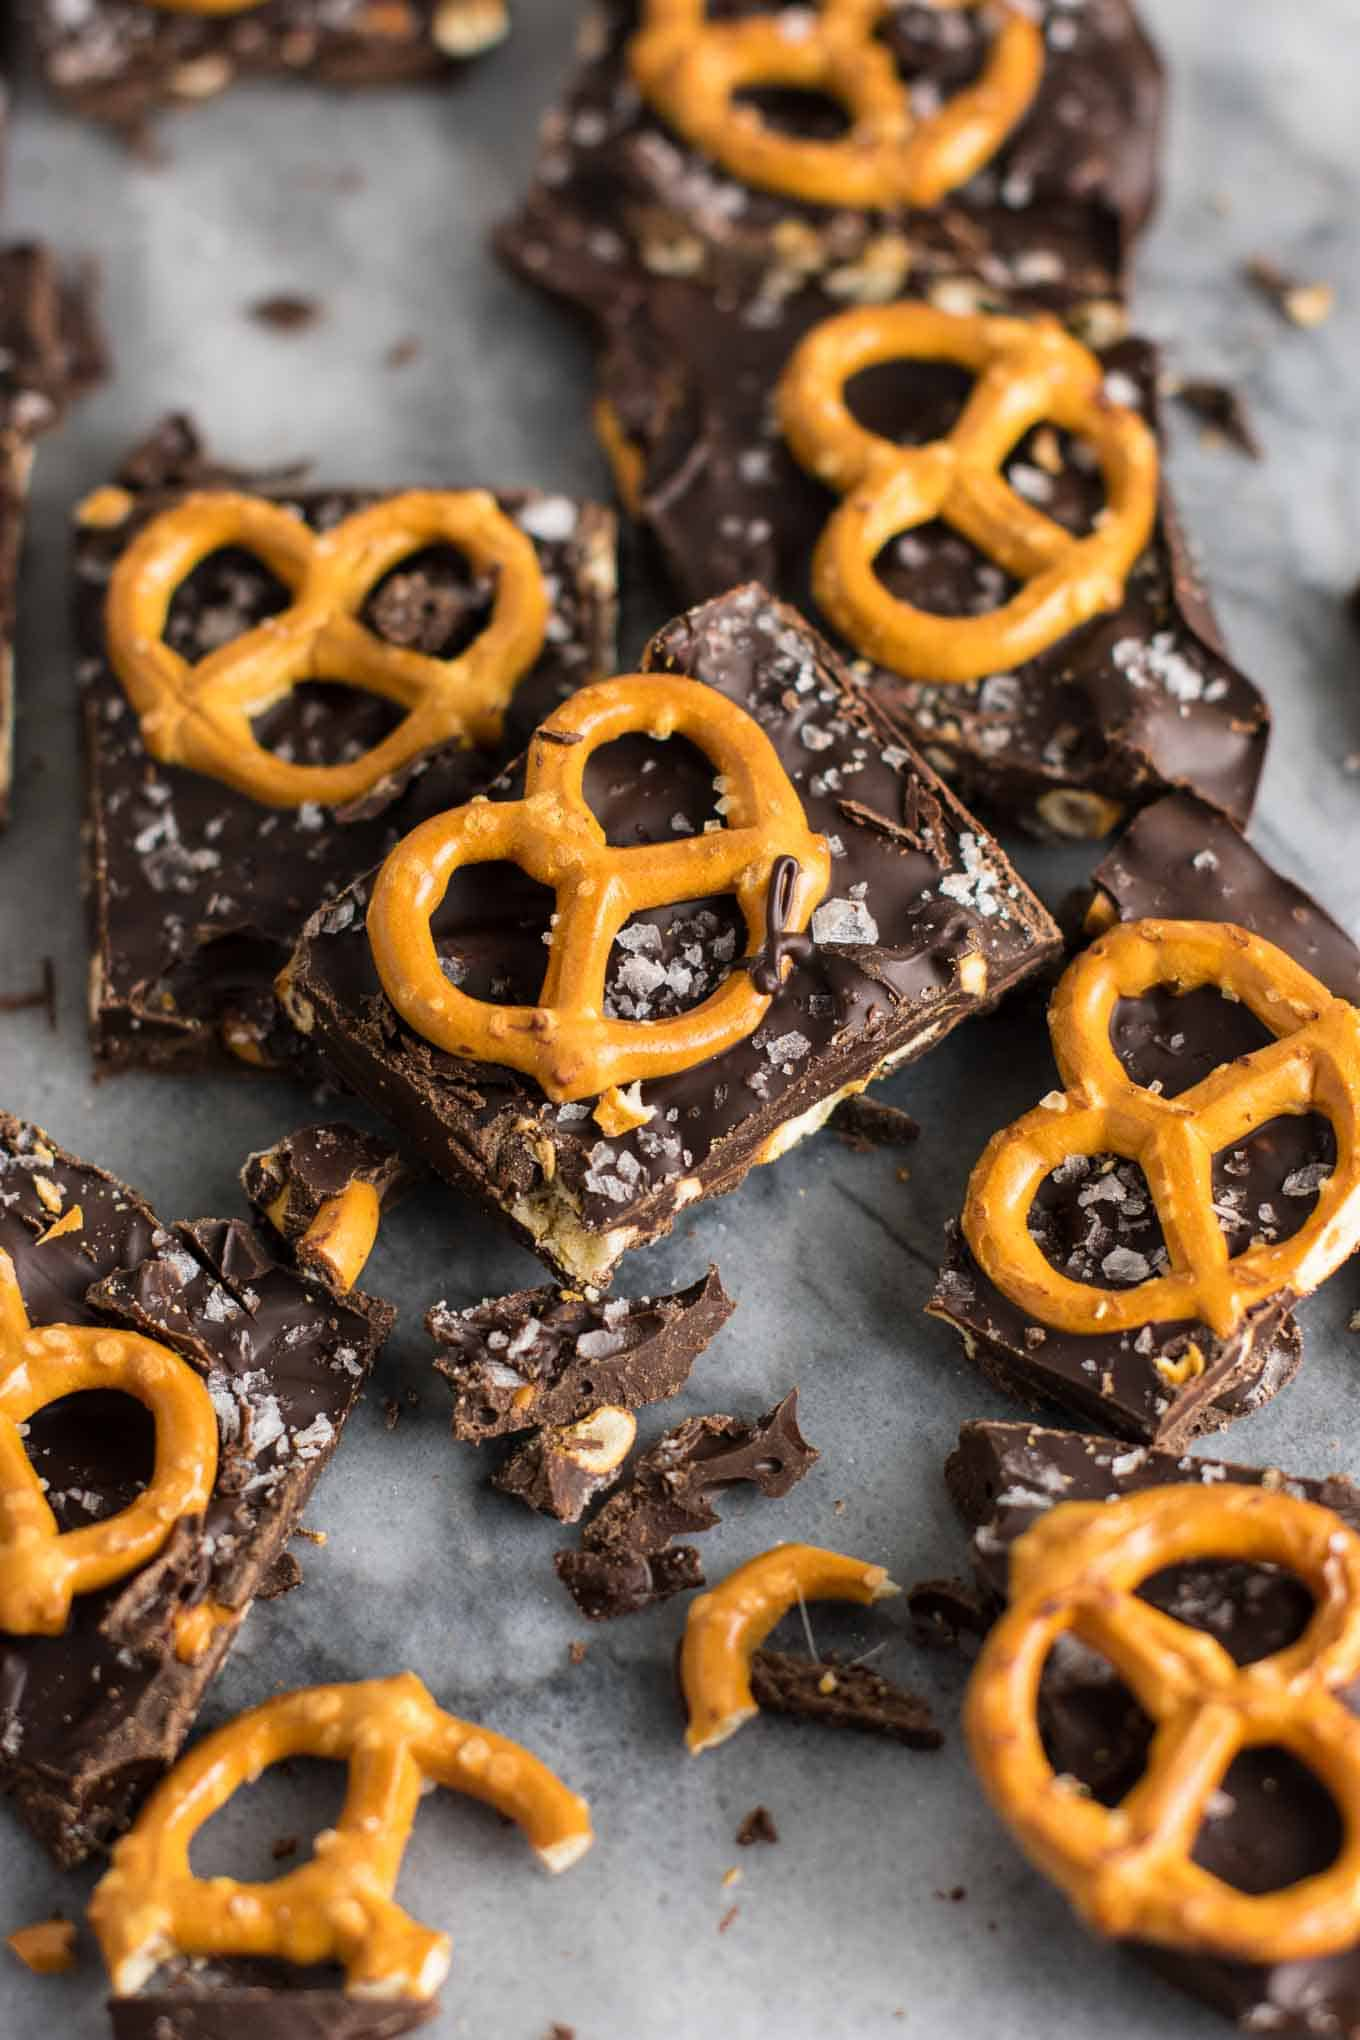 Vegan Chocolate Sea Salt Pretzel Bark Recipe (gluten free.) An indulgent healthy dessert that is so addicting! #vegan #veganpretzelbark #dessert #chocolate #healthy #vegandessert